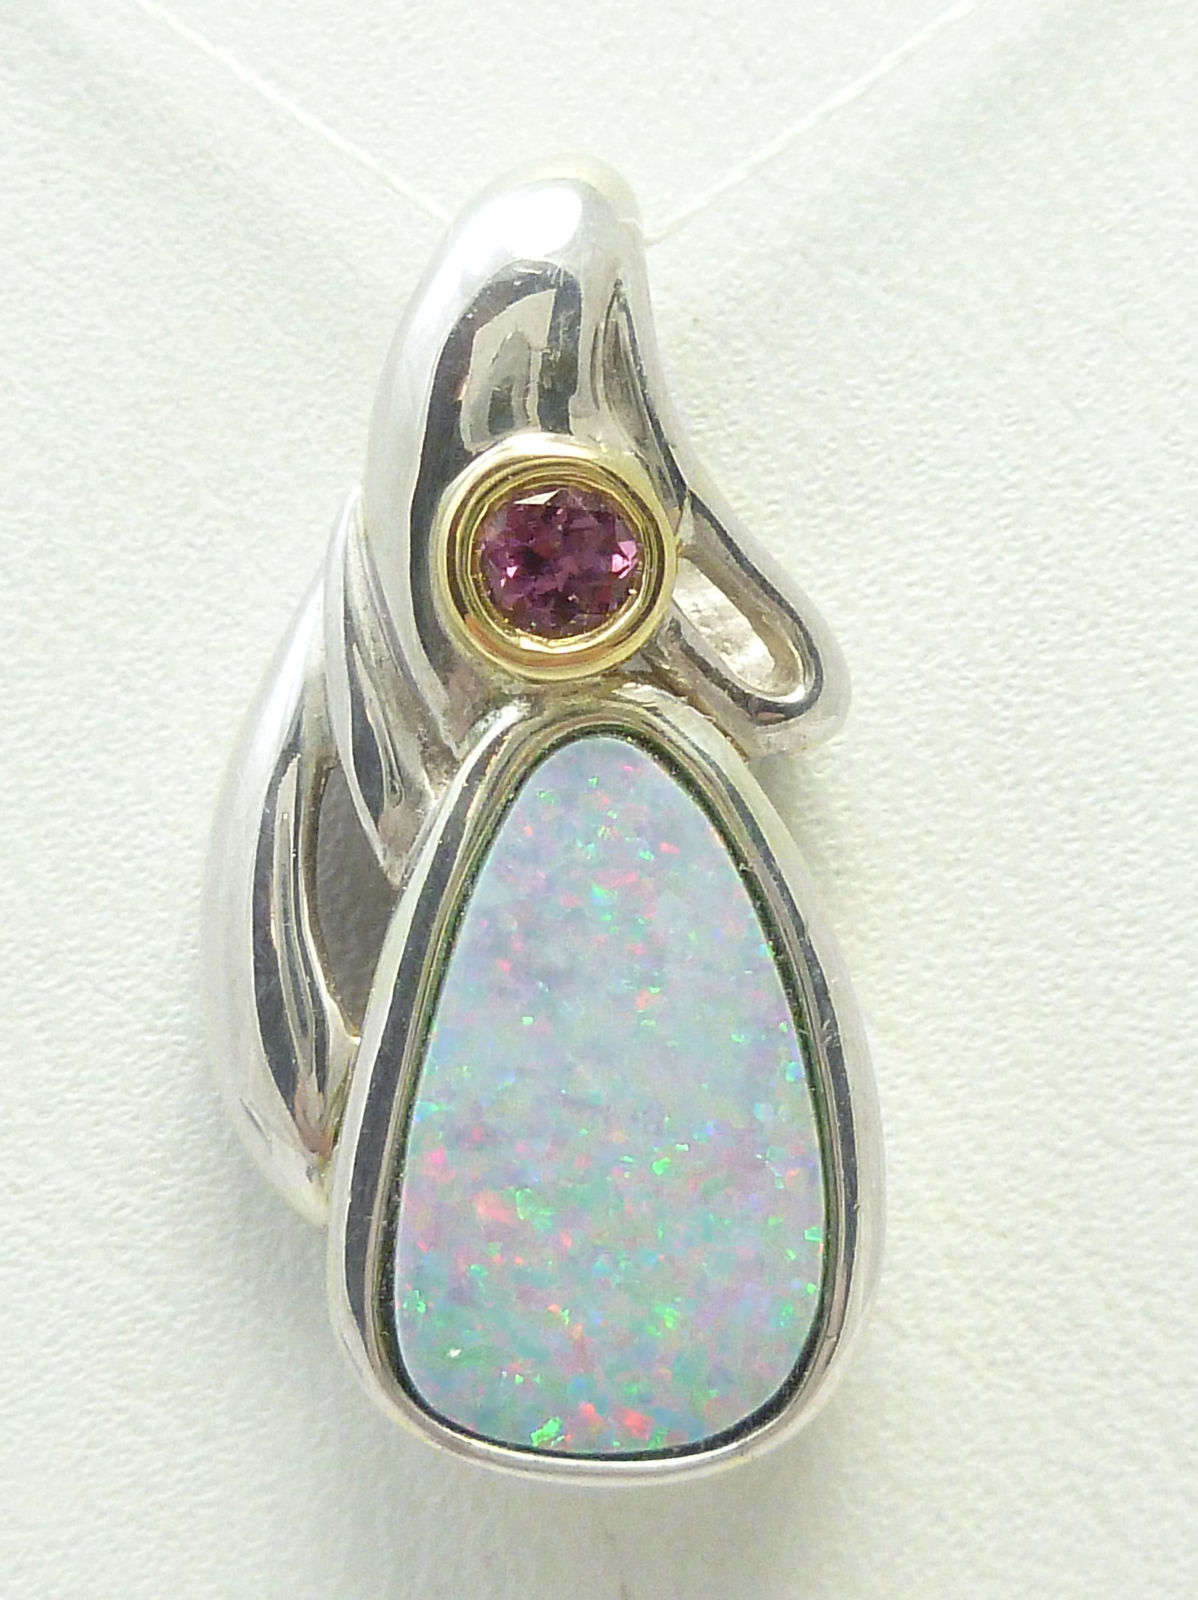 Primary image for Sterling Australian Opal Pendant with Plum Garnet 14K bezel Frame